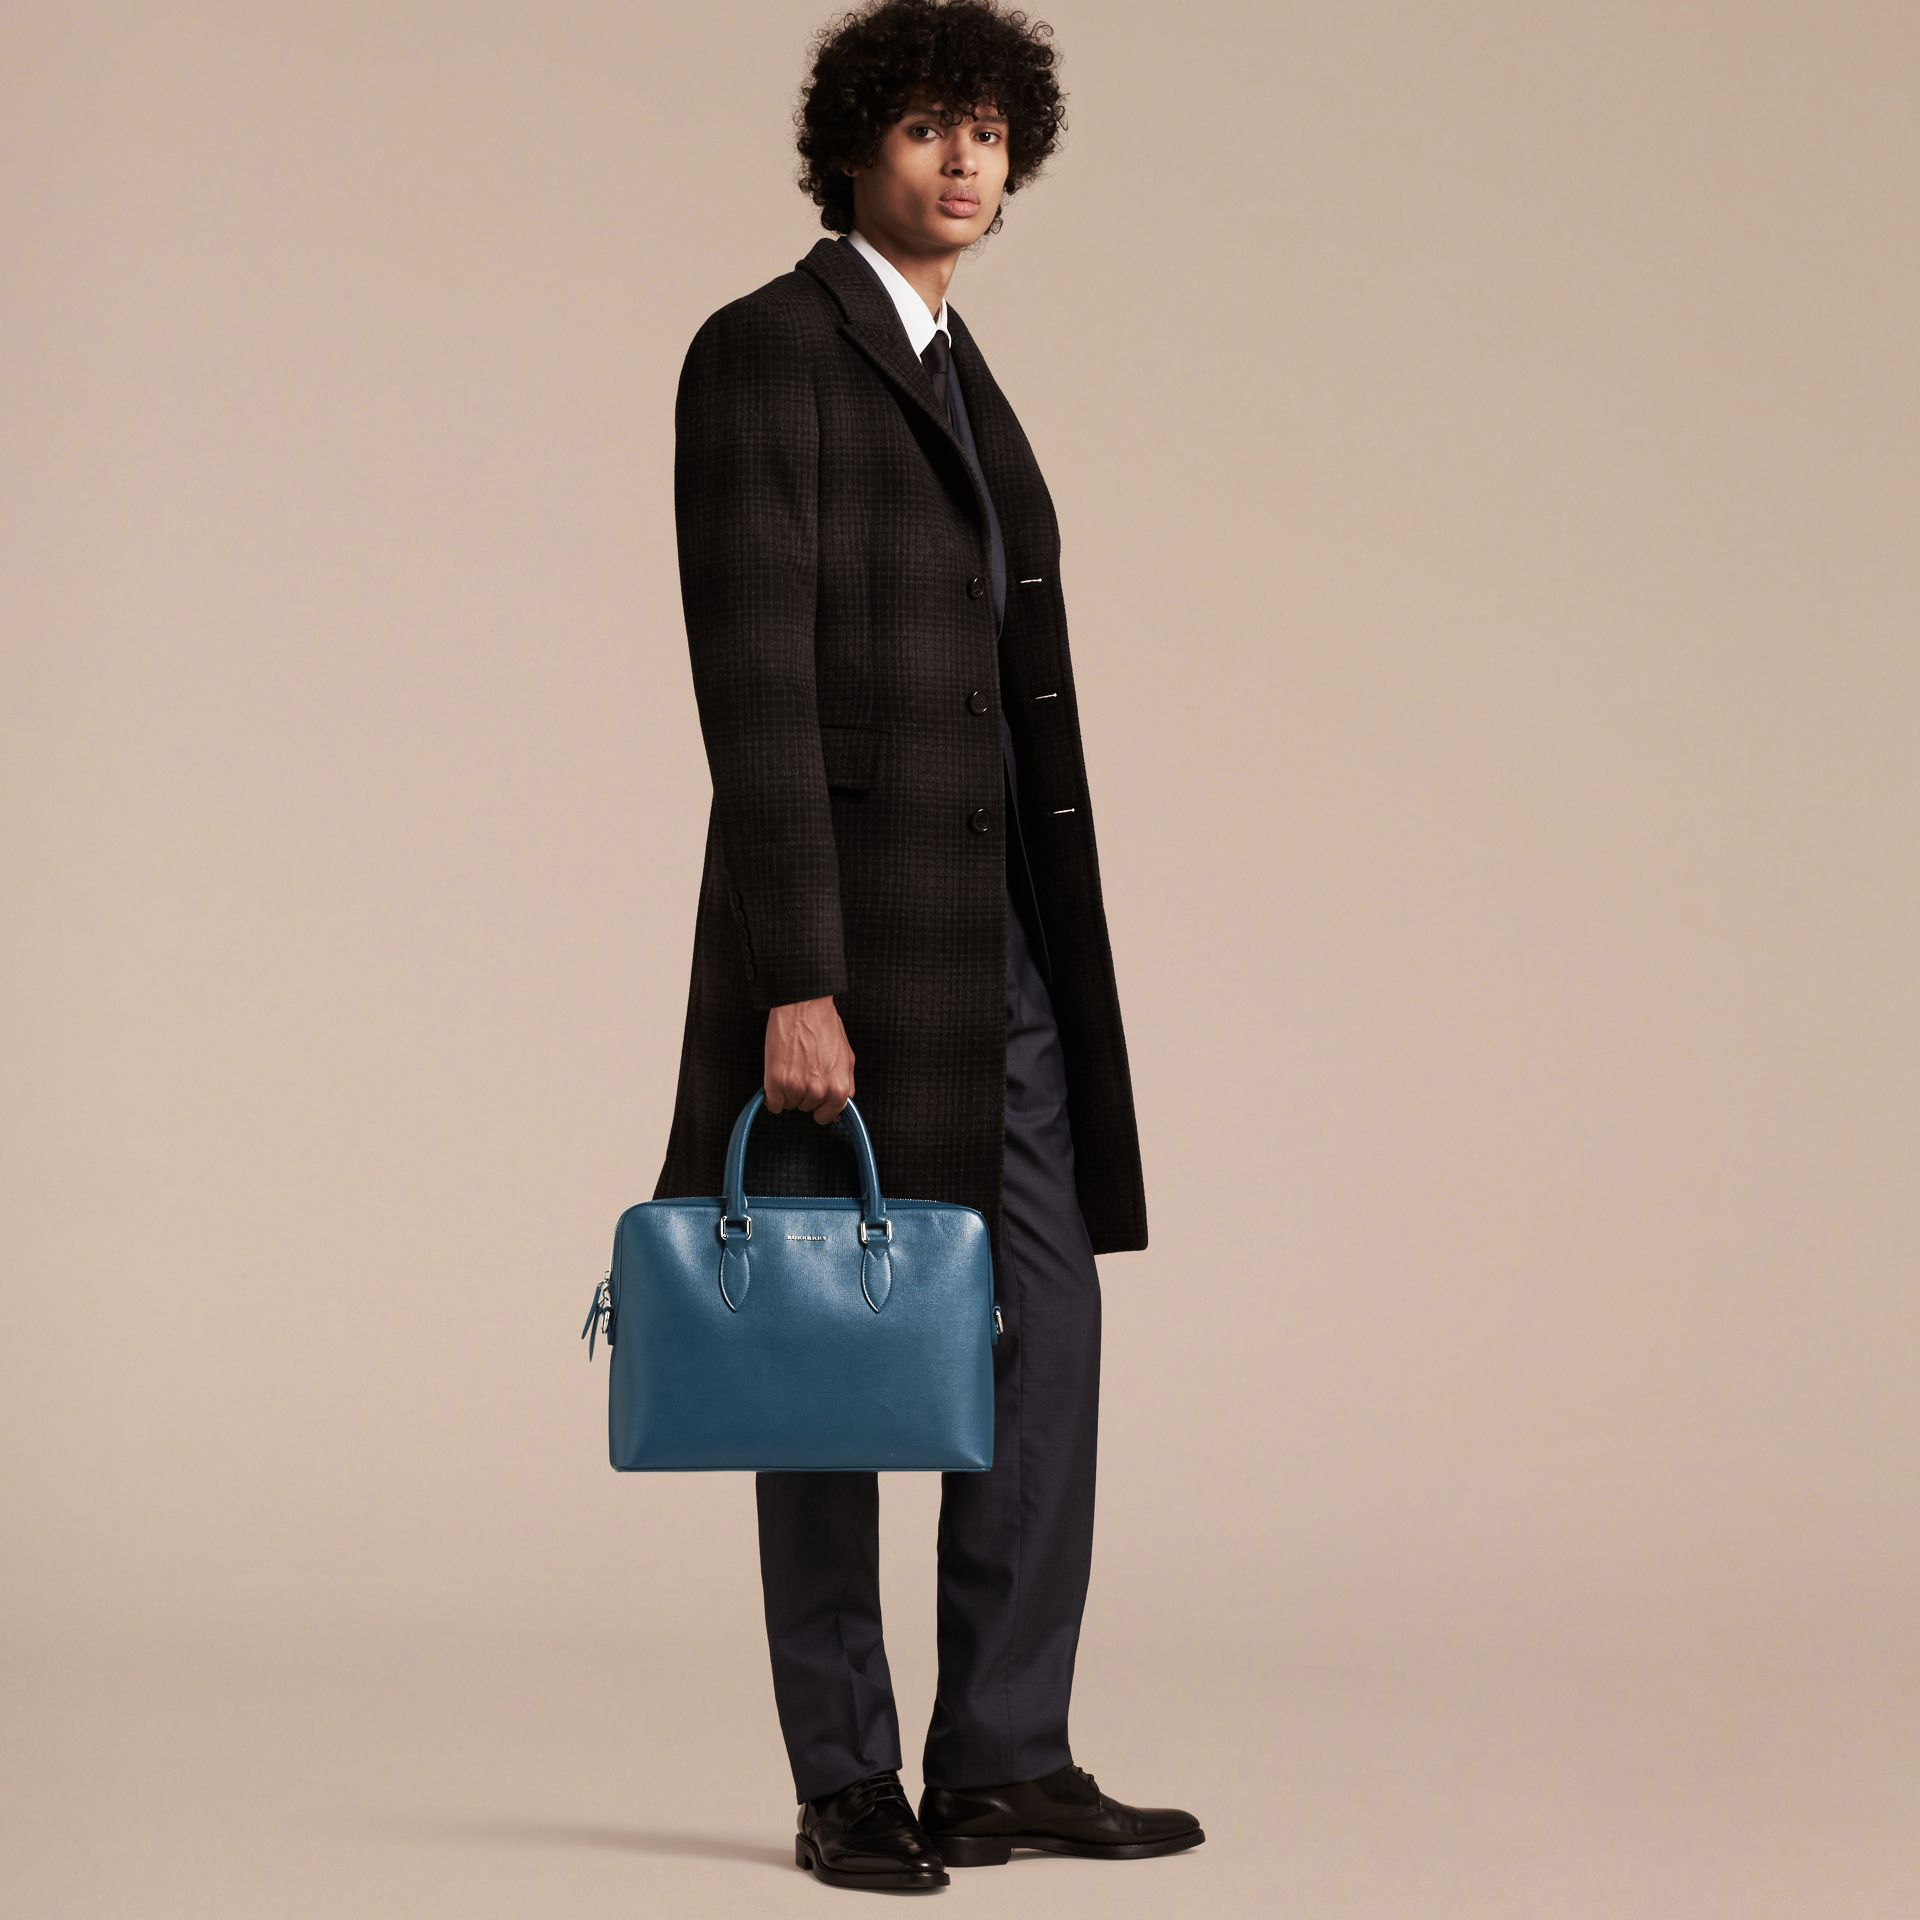 The Slim Barrow in London Leather in Mineral Blue - Men | Burberry - gallery image 3